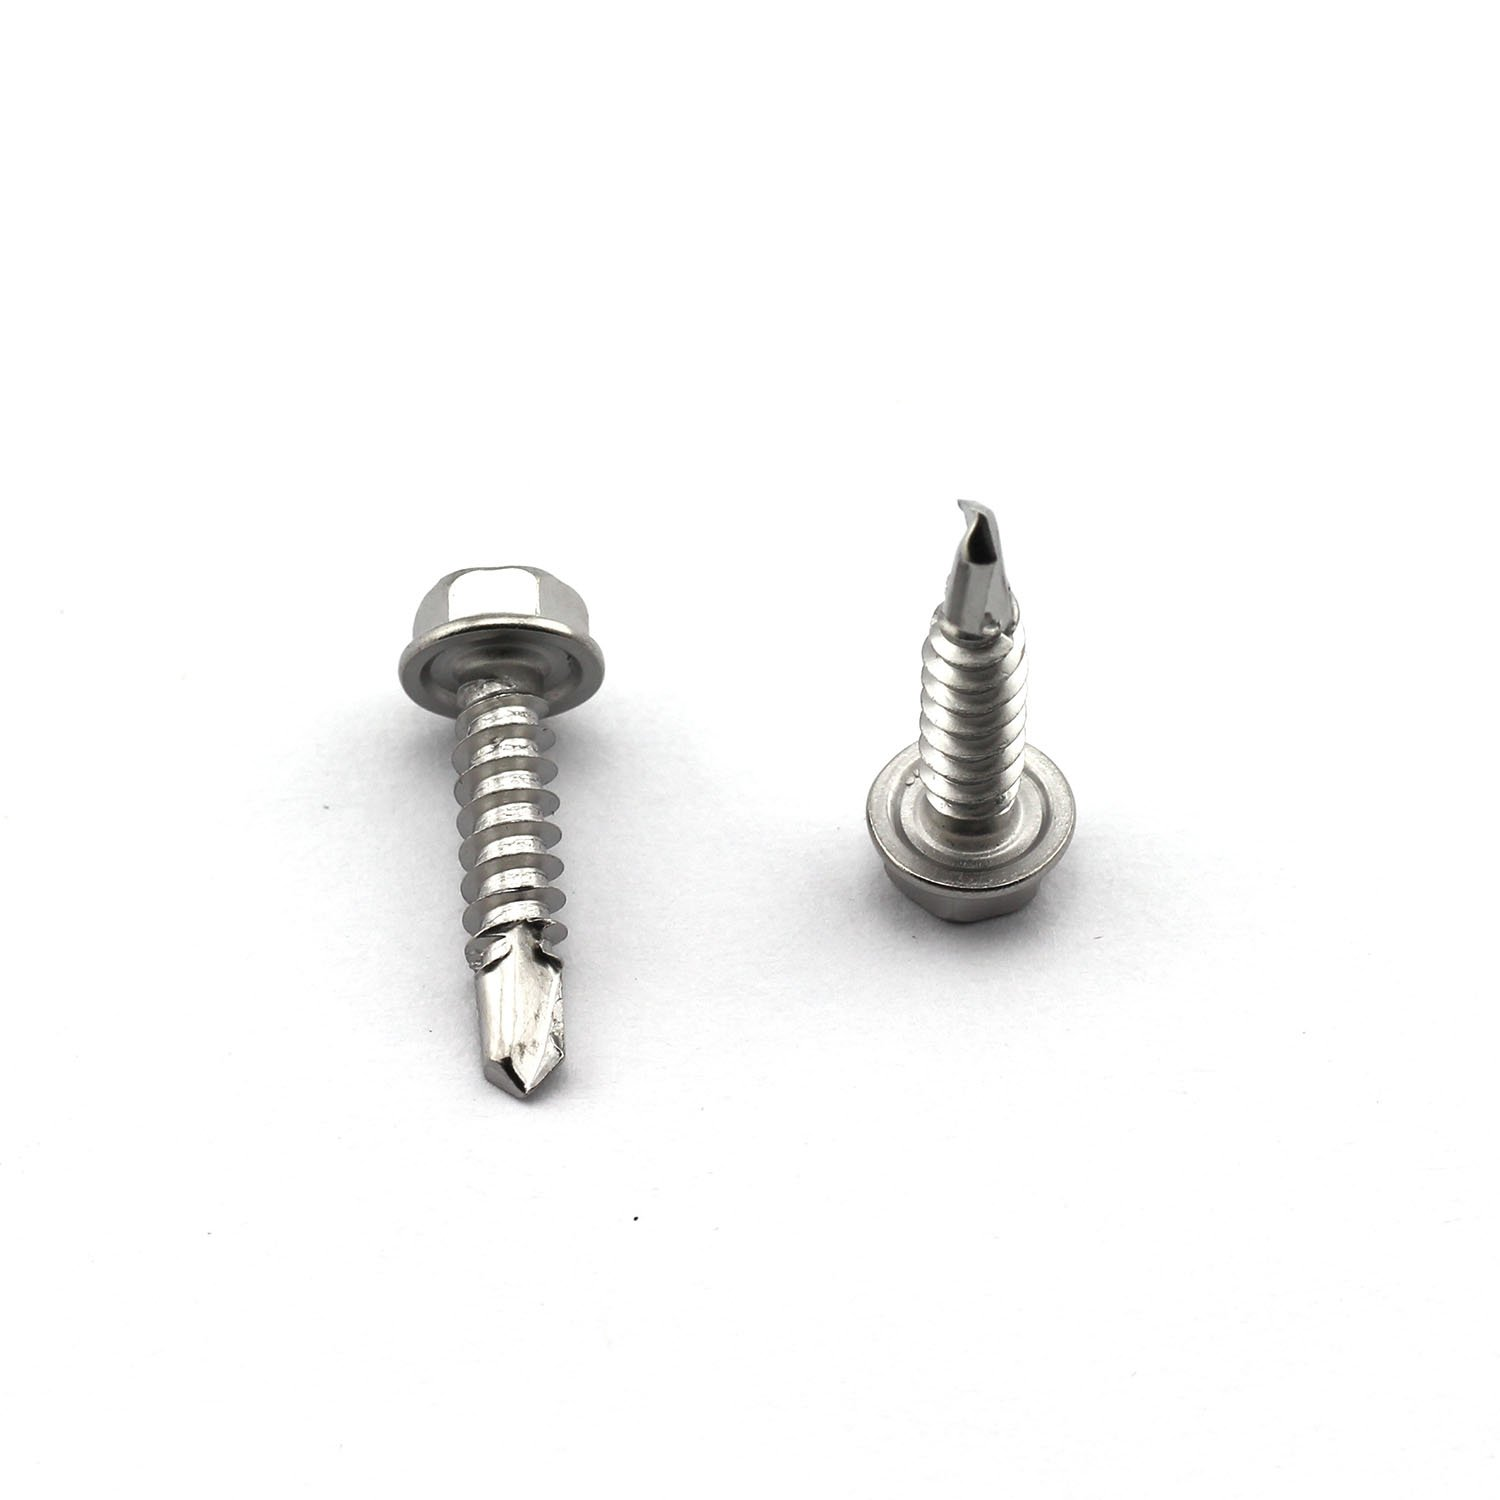 50pcs #8 3 4 Inches Self Drilling Dovetail Screws 410 Stainless Steel Hex Washer Head Tapping Screw Tek Screws